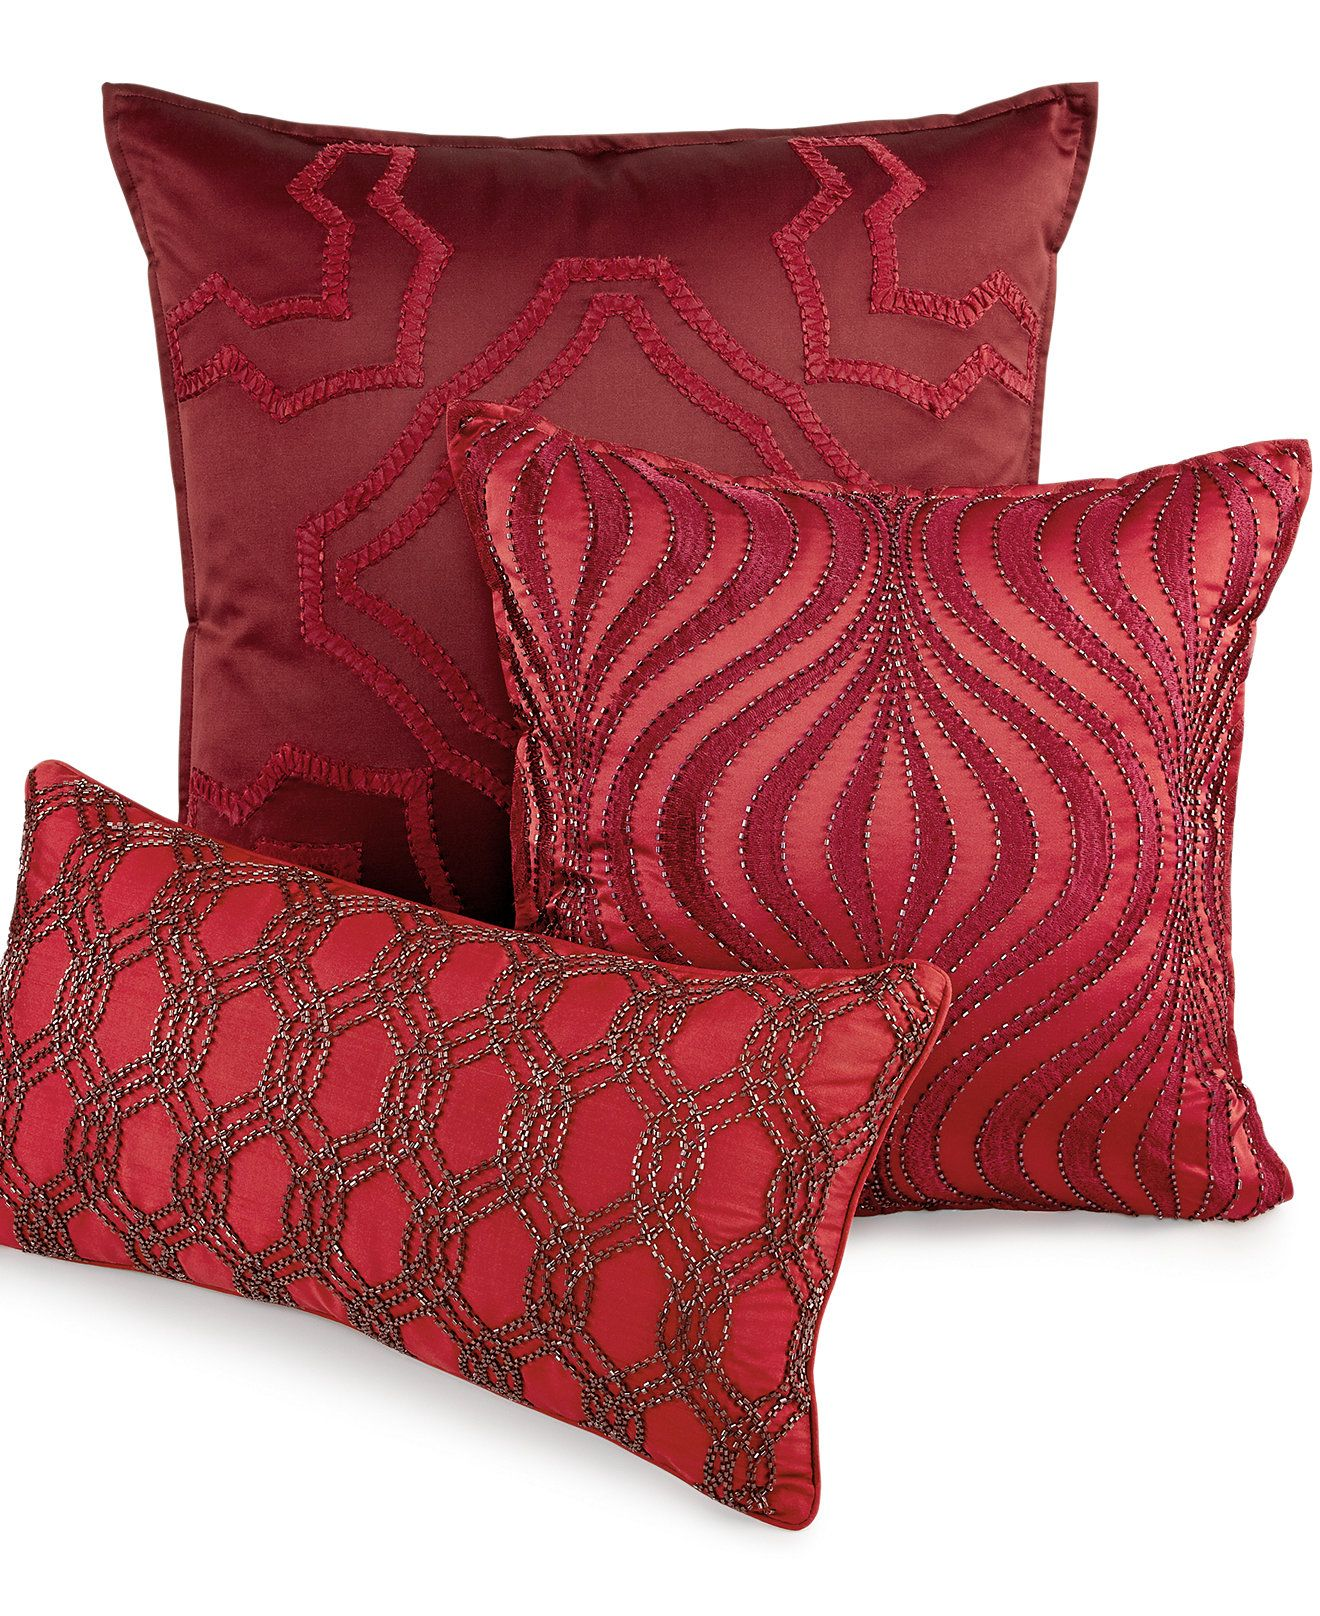 Macy's Decorative Pillows Alluring Closeout Hotel Collection Medallion Decorative Pillow Collection 2018